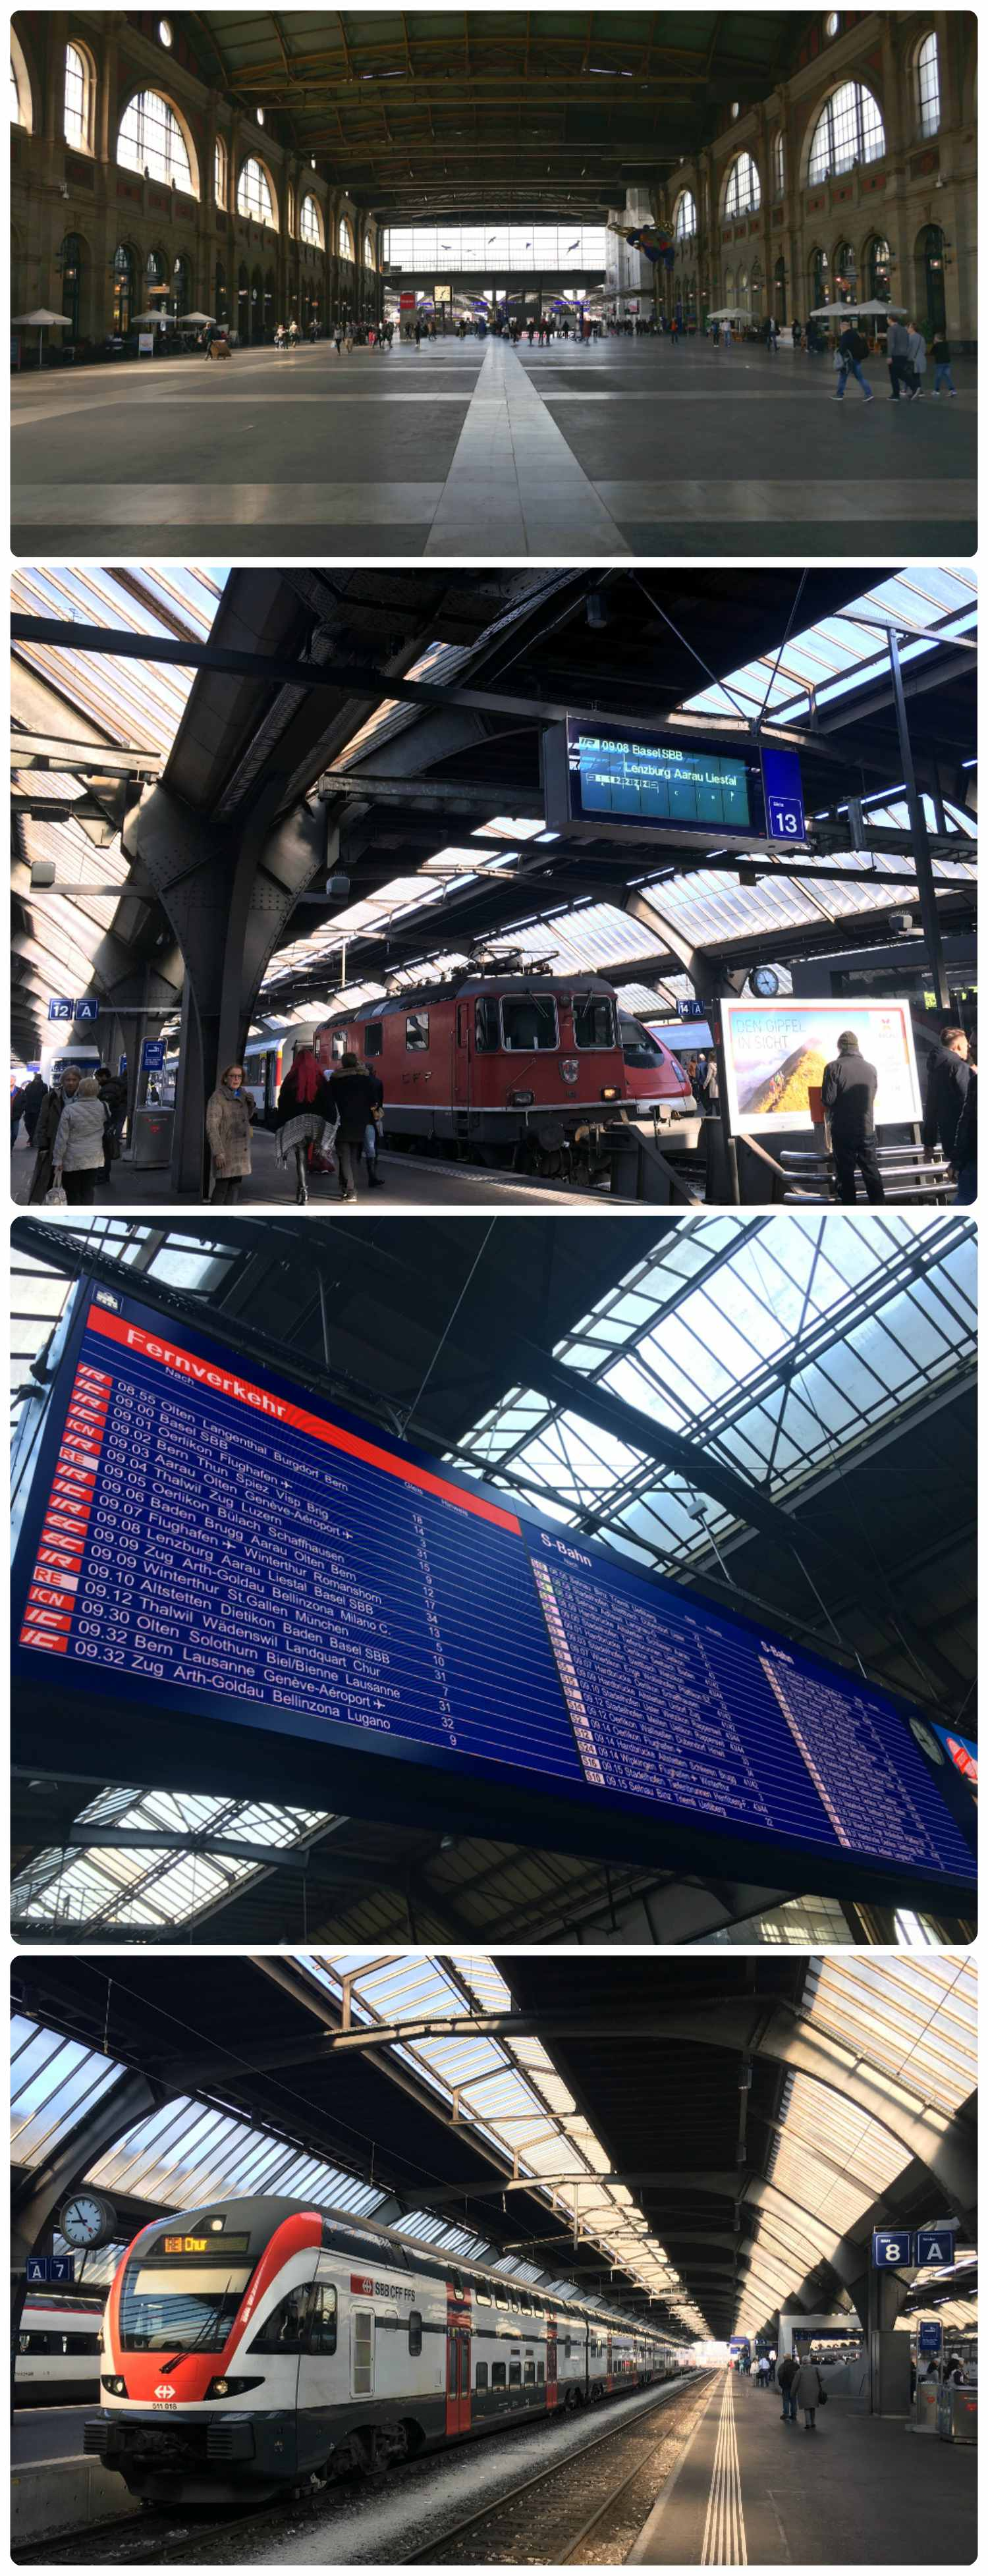 Top to bottom: Zurich train station (Zürich Hauptbahnhof), train platform in the station, digital signboard with all train and platform information, train to Chur.